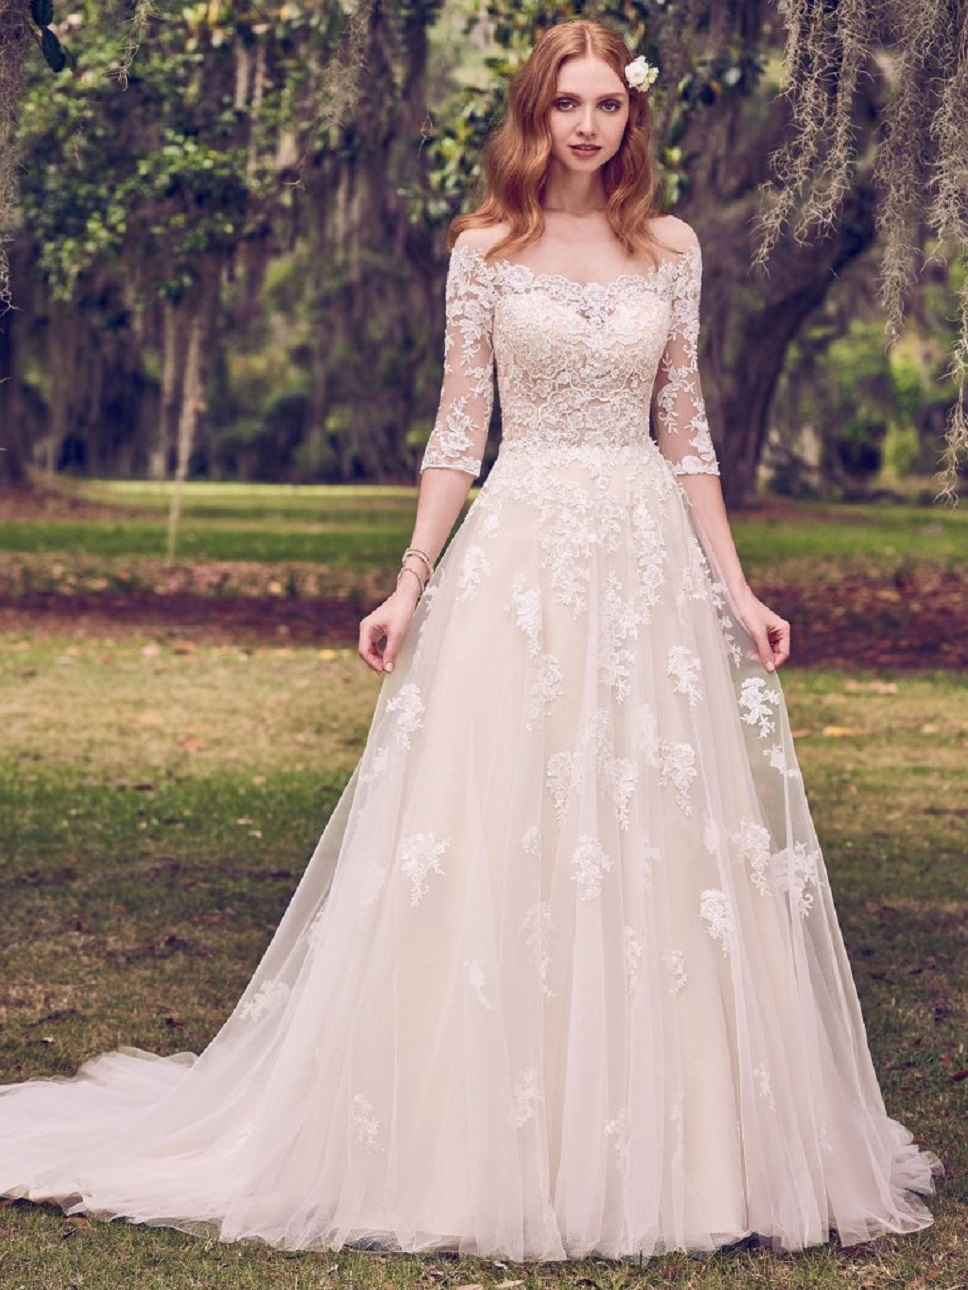 Cool & Perfect Wedding Dress